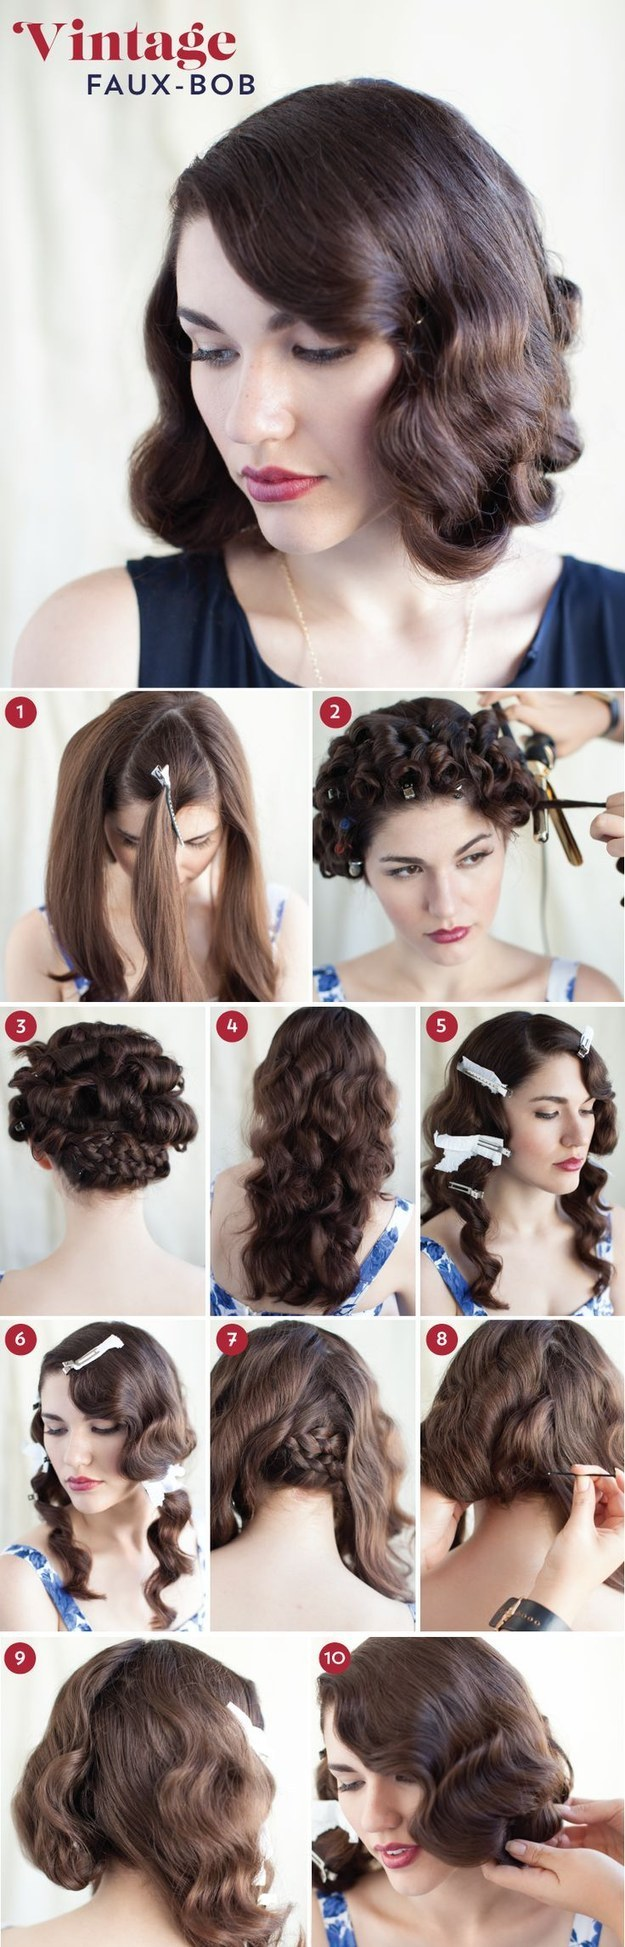 30 DIY Vintage Hairstyle Tutorials for Short 9a715310b